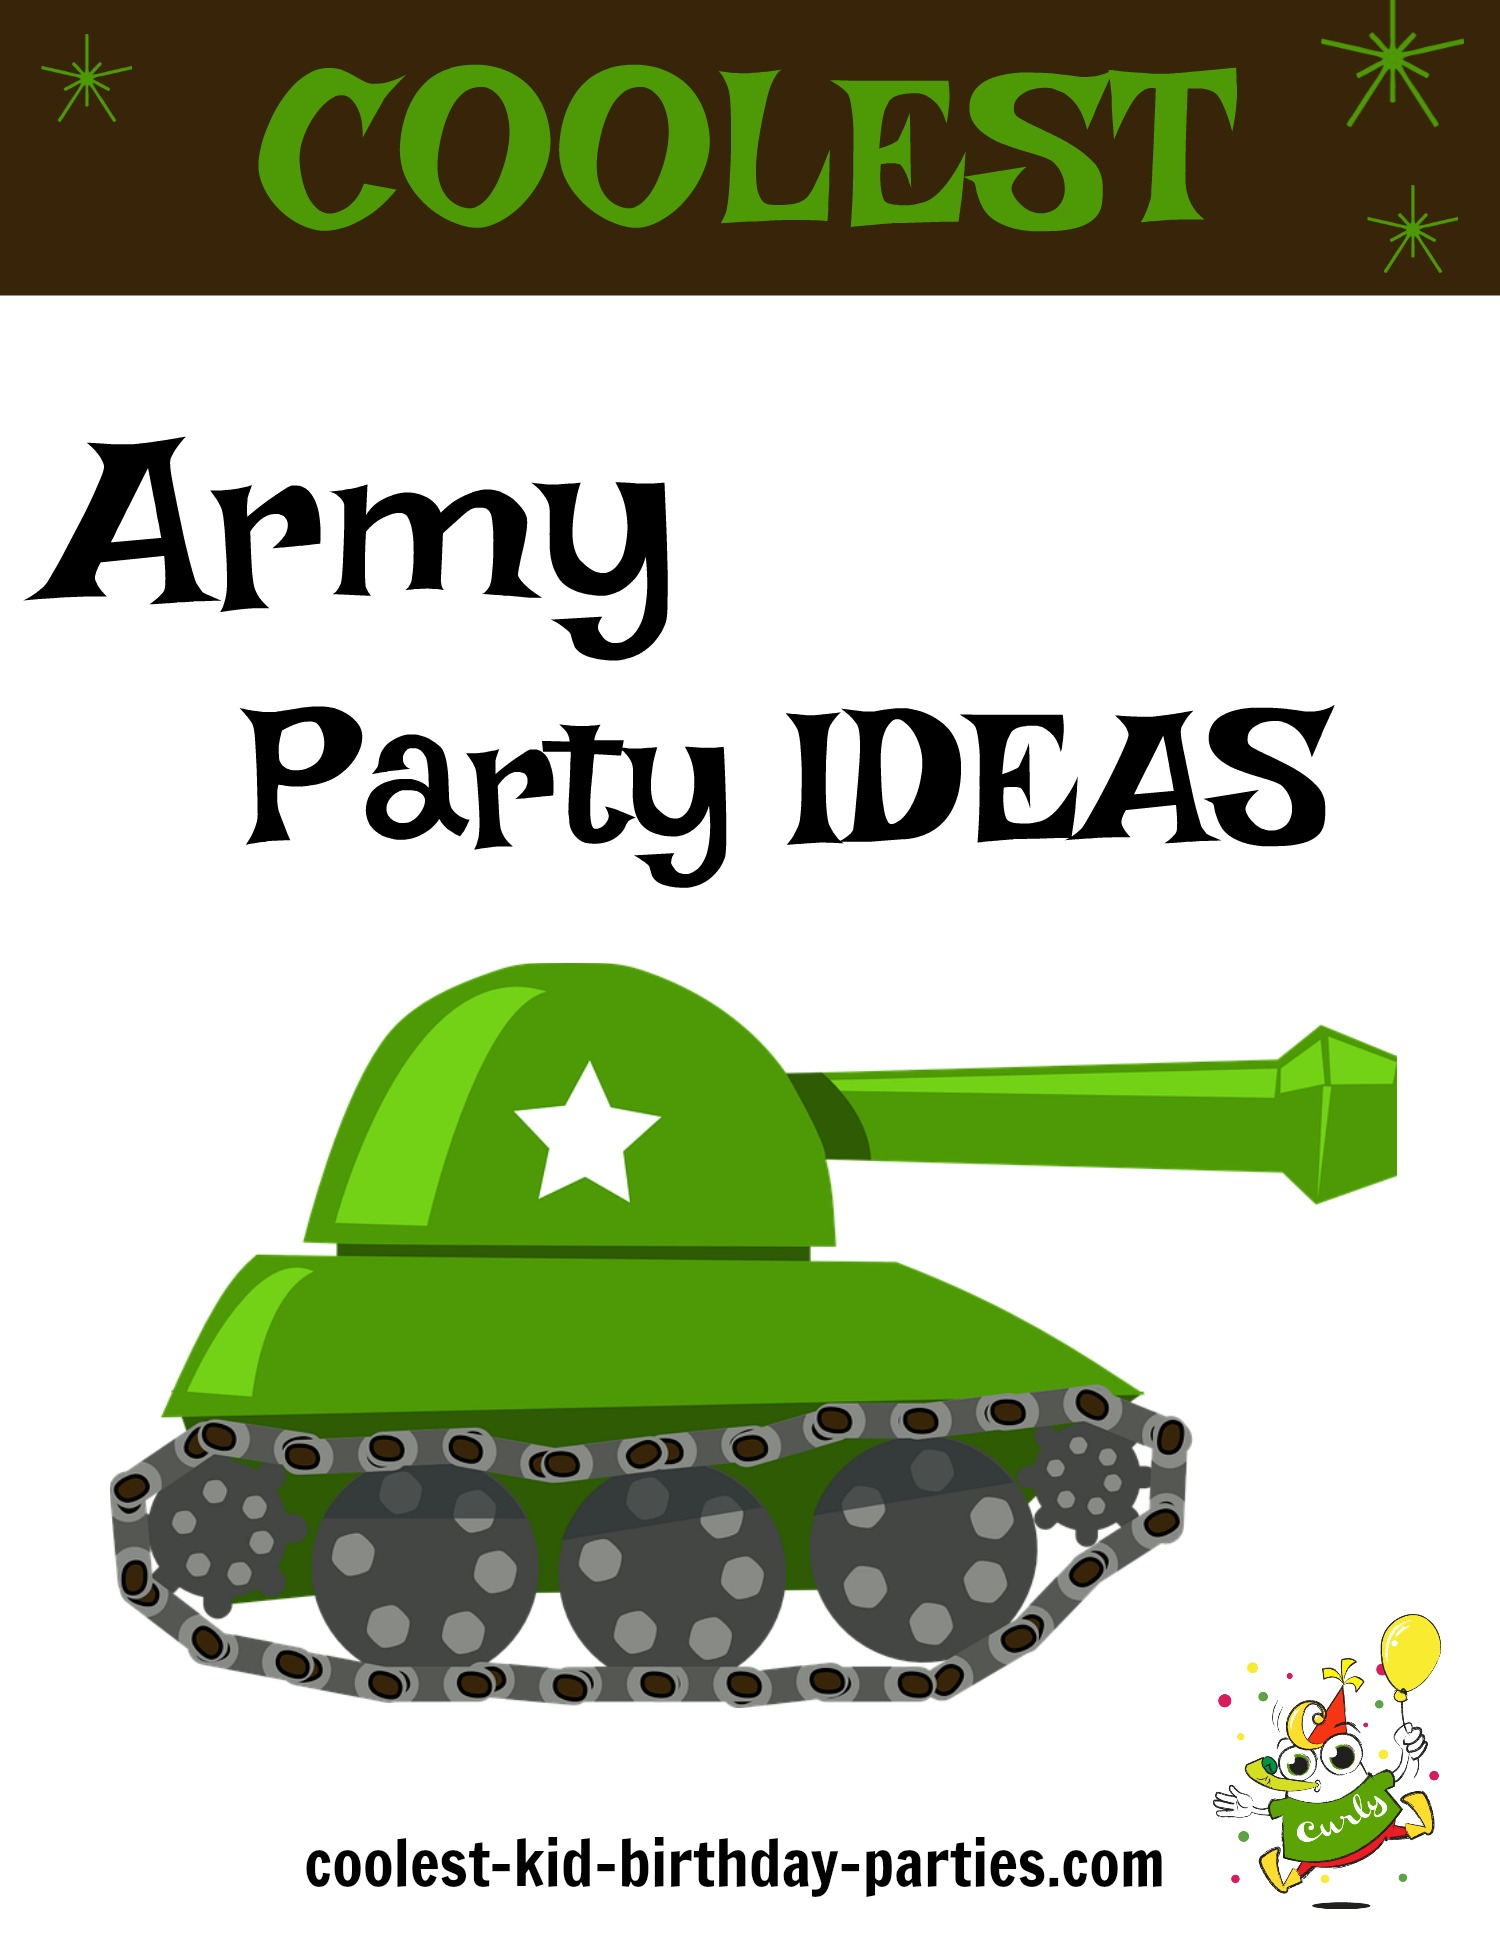 graphic regarding Free Printable Left Right Birthday Game titled Coolest Armed service Concept Occasion Plans Coolest Child Birthday Events